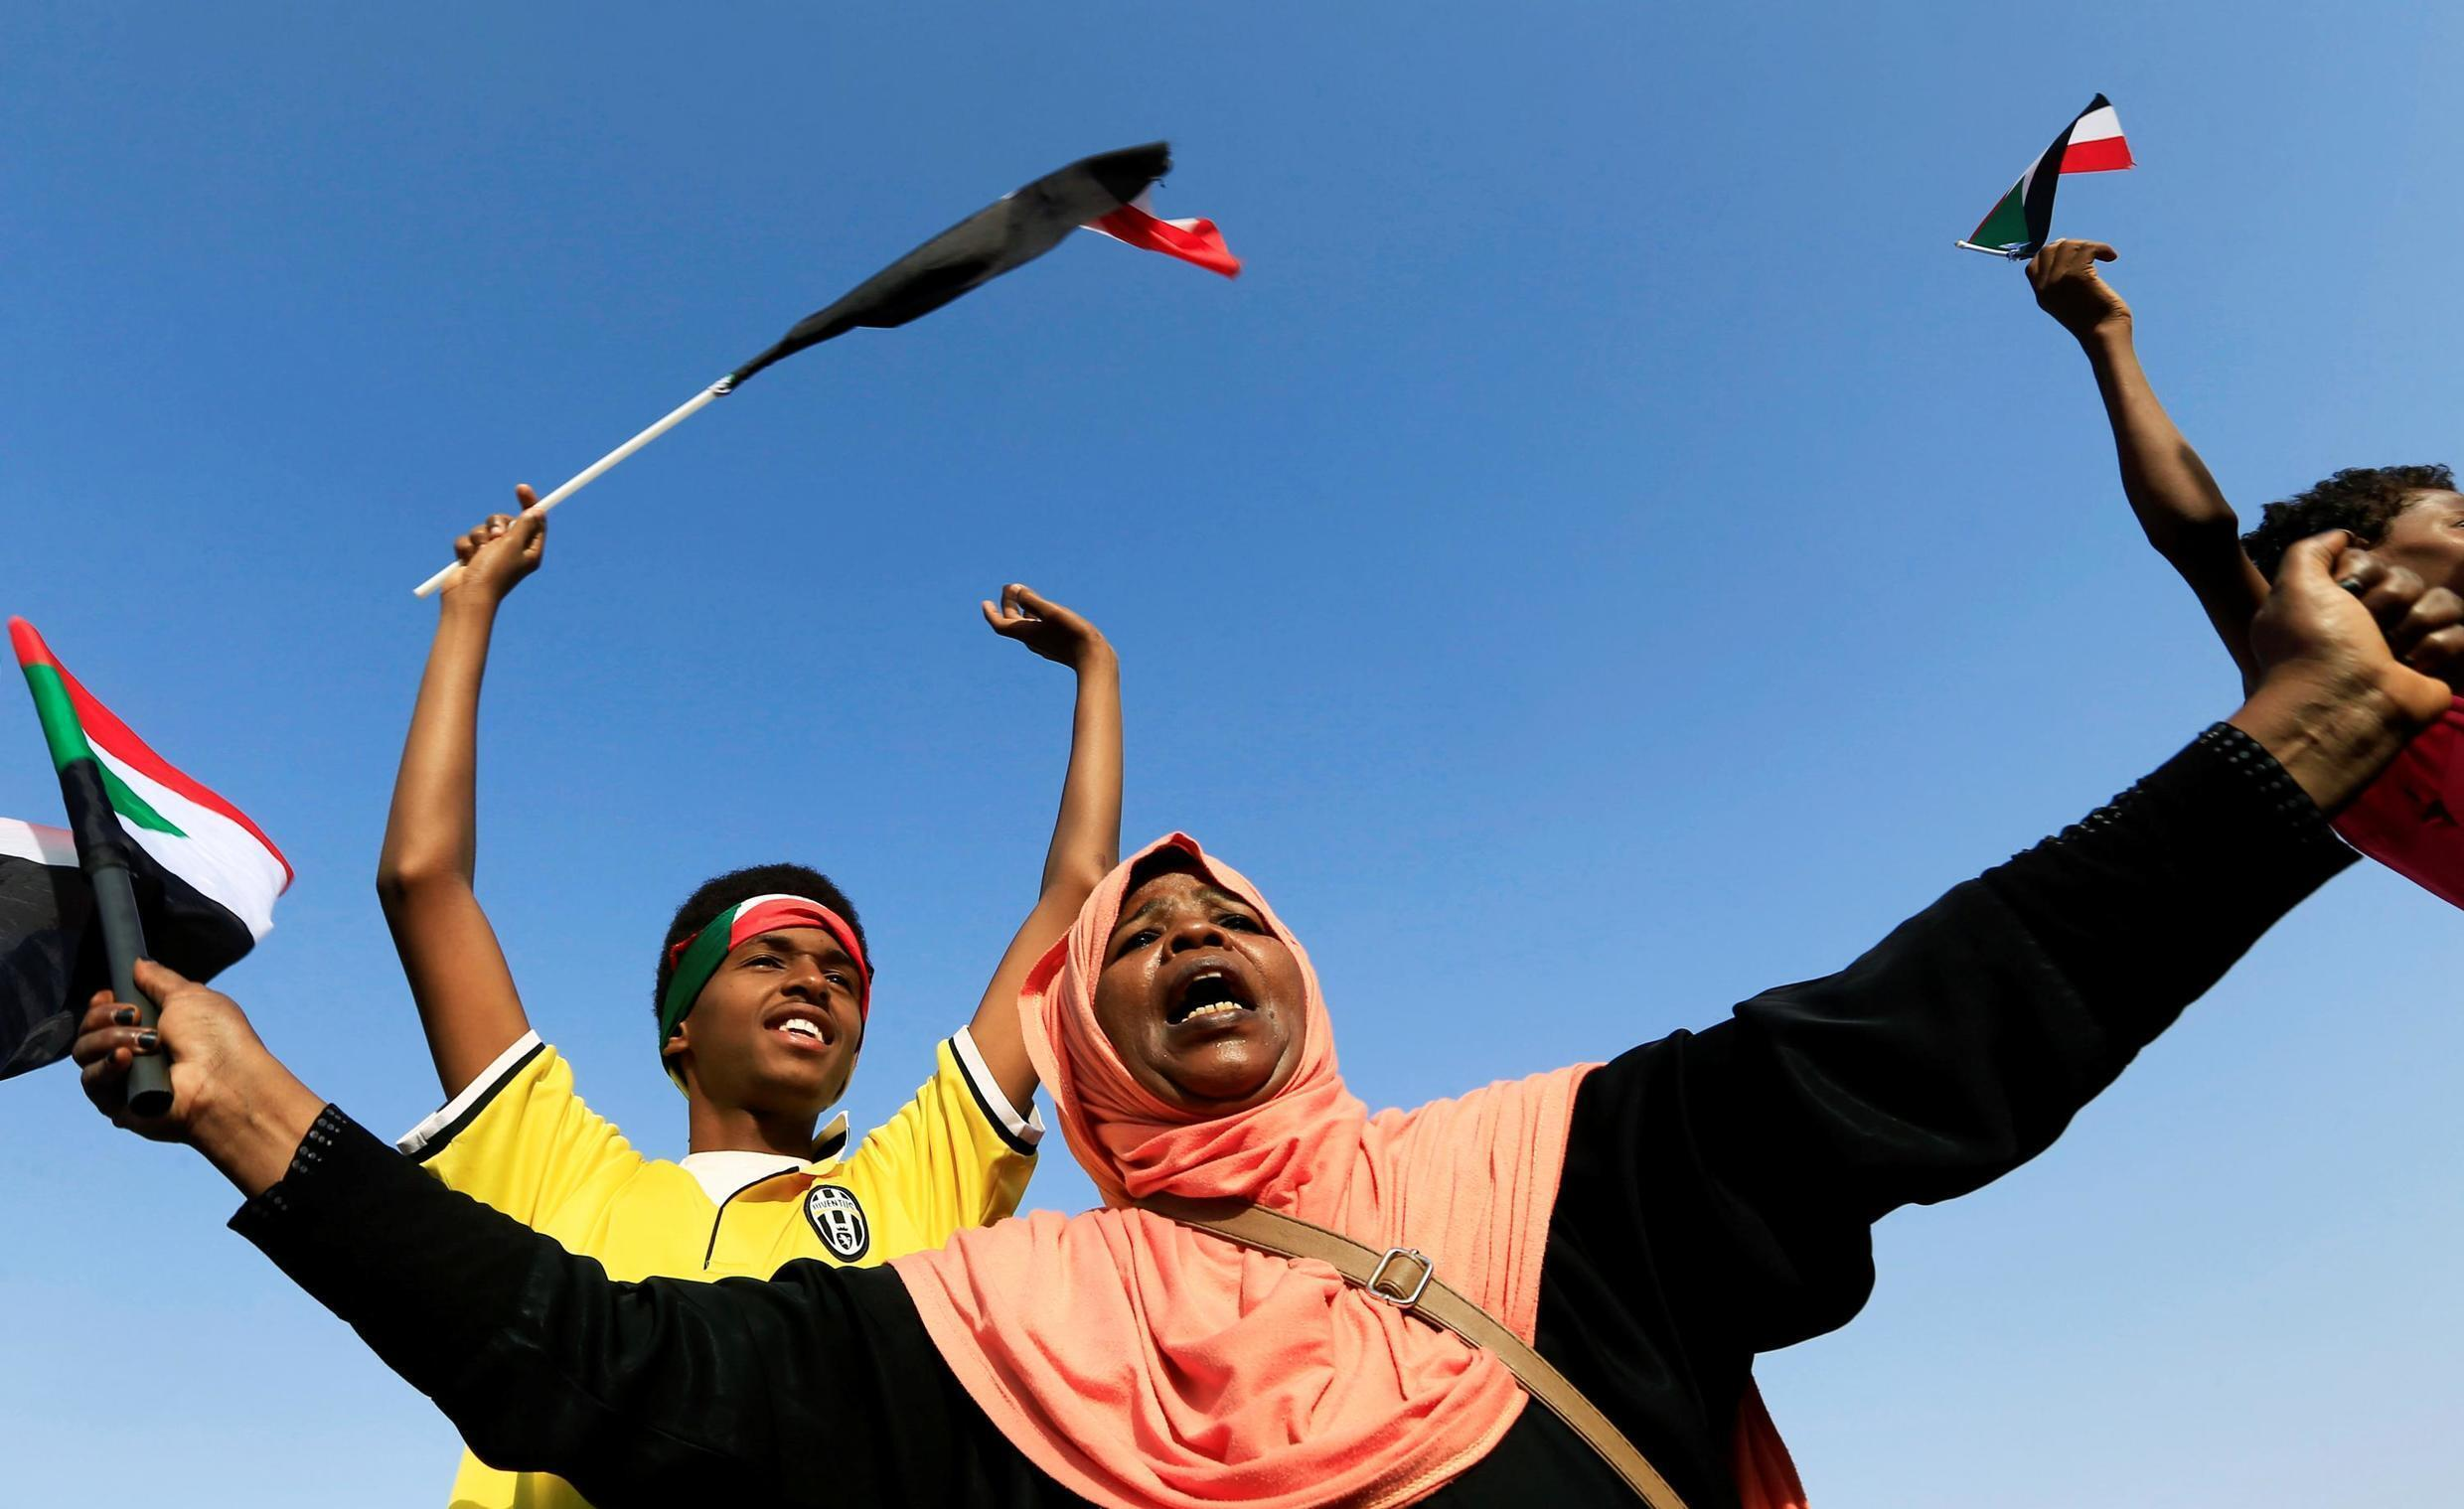 A Sudanese woman chants slogans and wave national flag in celebration, after the ruling military council and a coalition of opposition and protest groups reach a power-sharing agreement, Khartoum, Sudan, July 5, 2019.